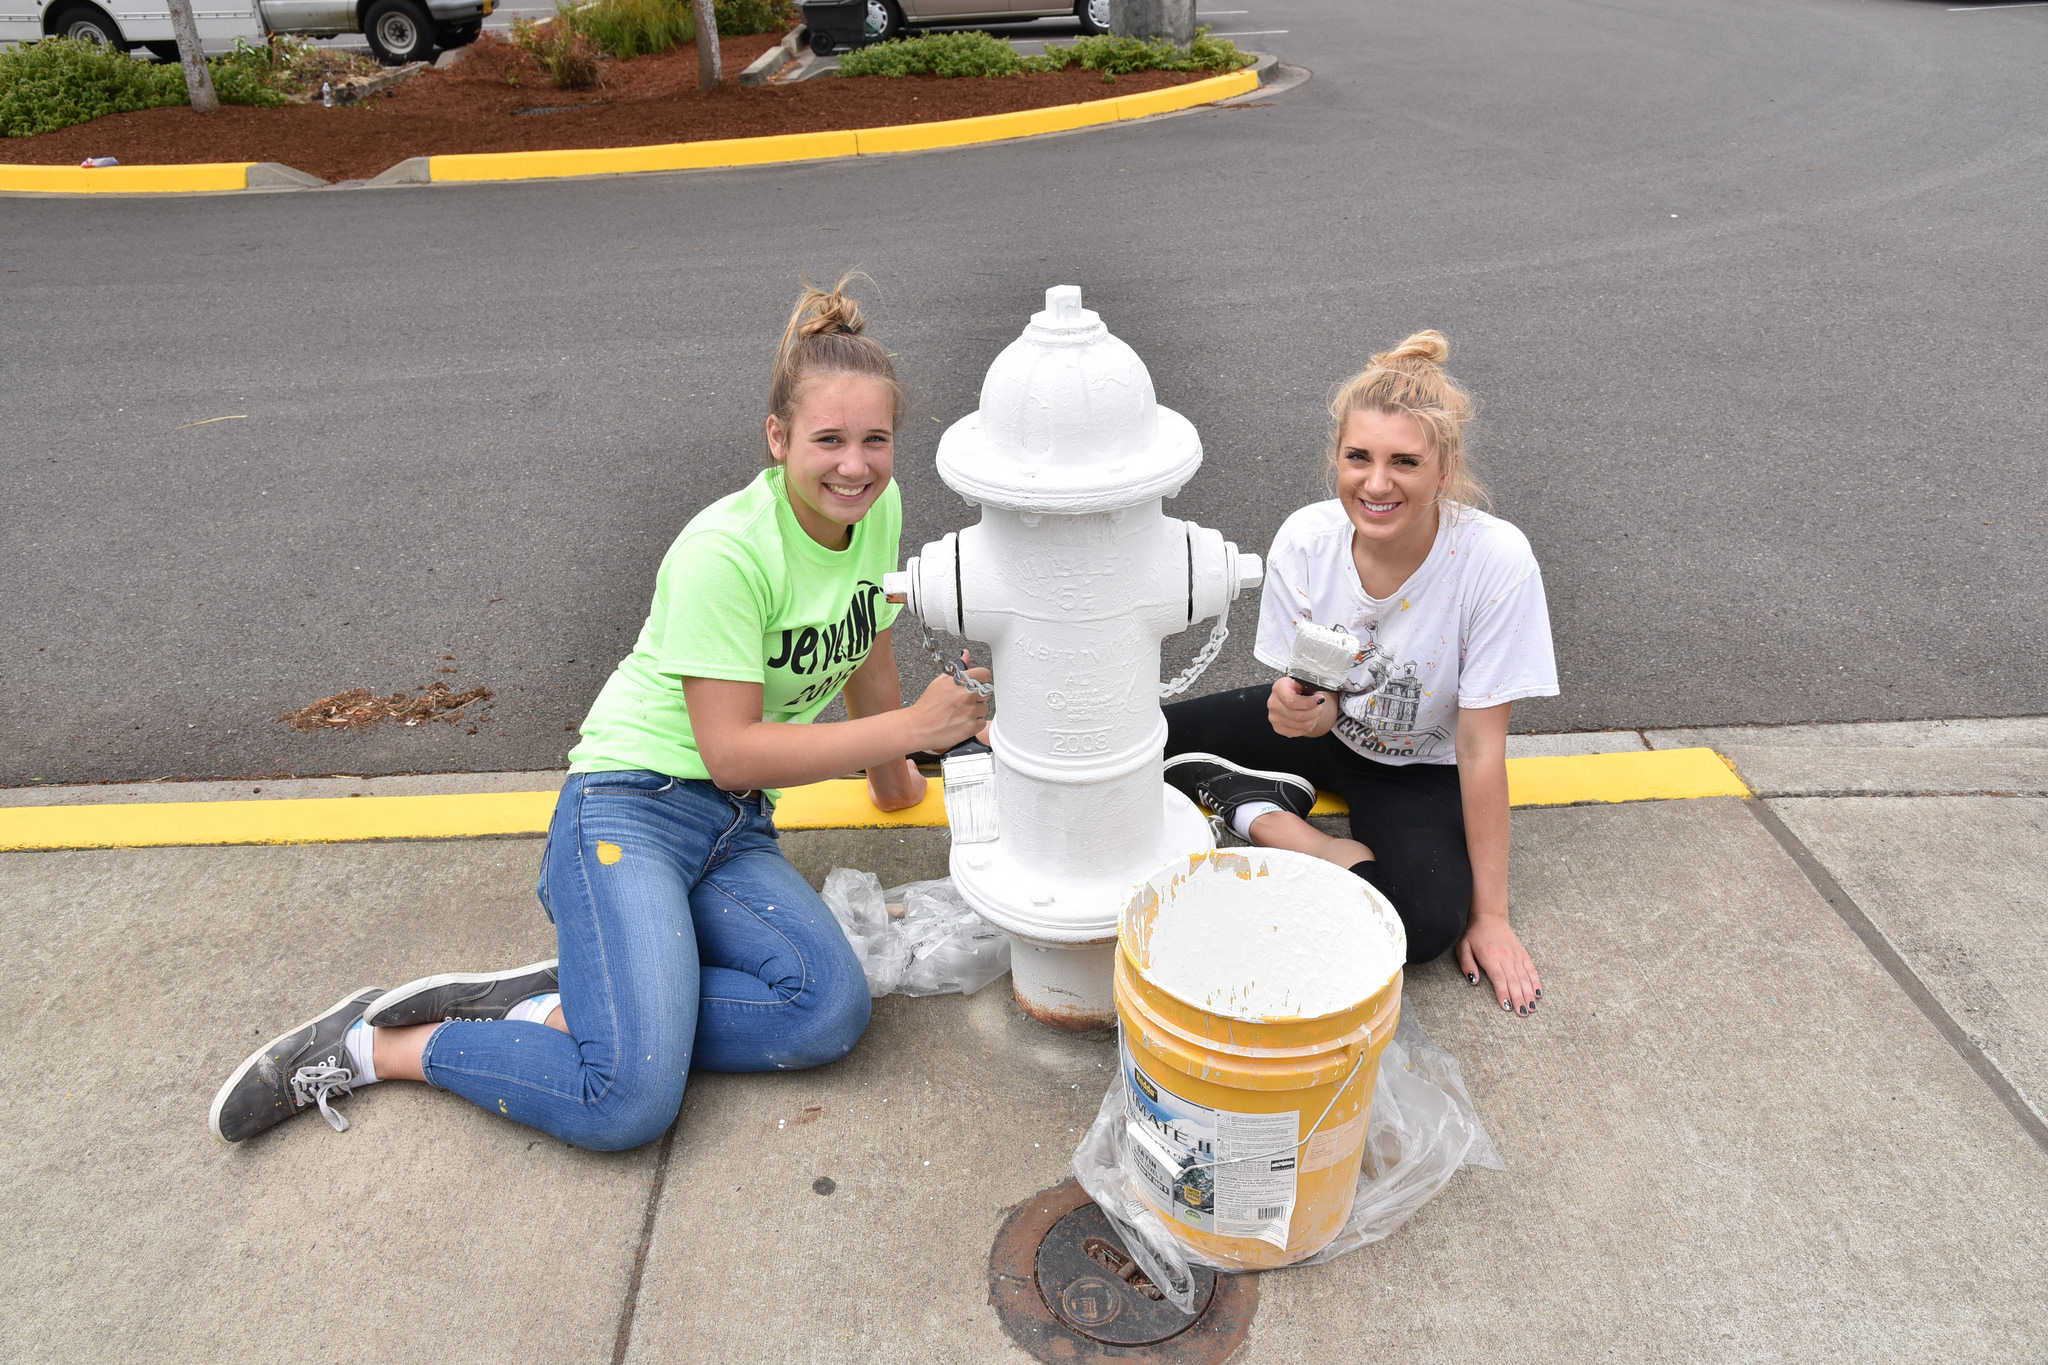 Volunteers also painted curbs and hydrants at Timber Ridge School.